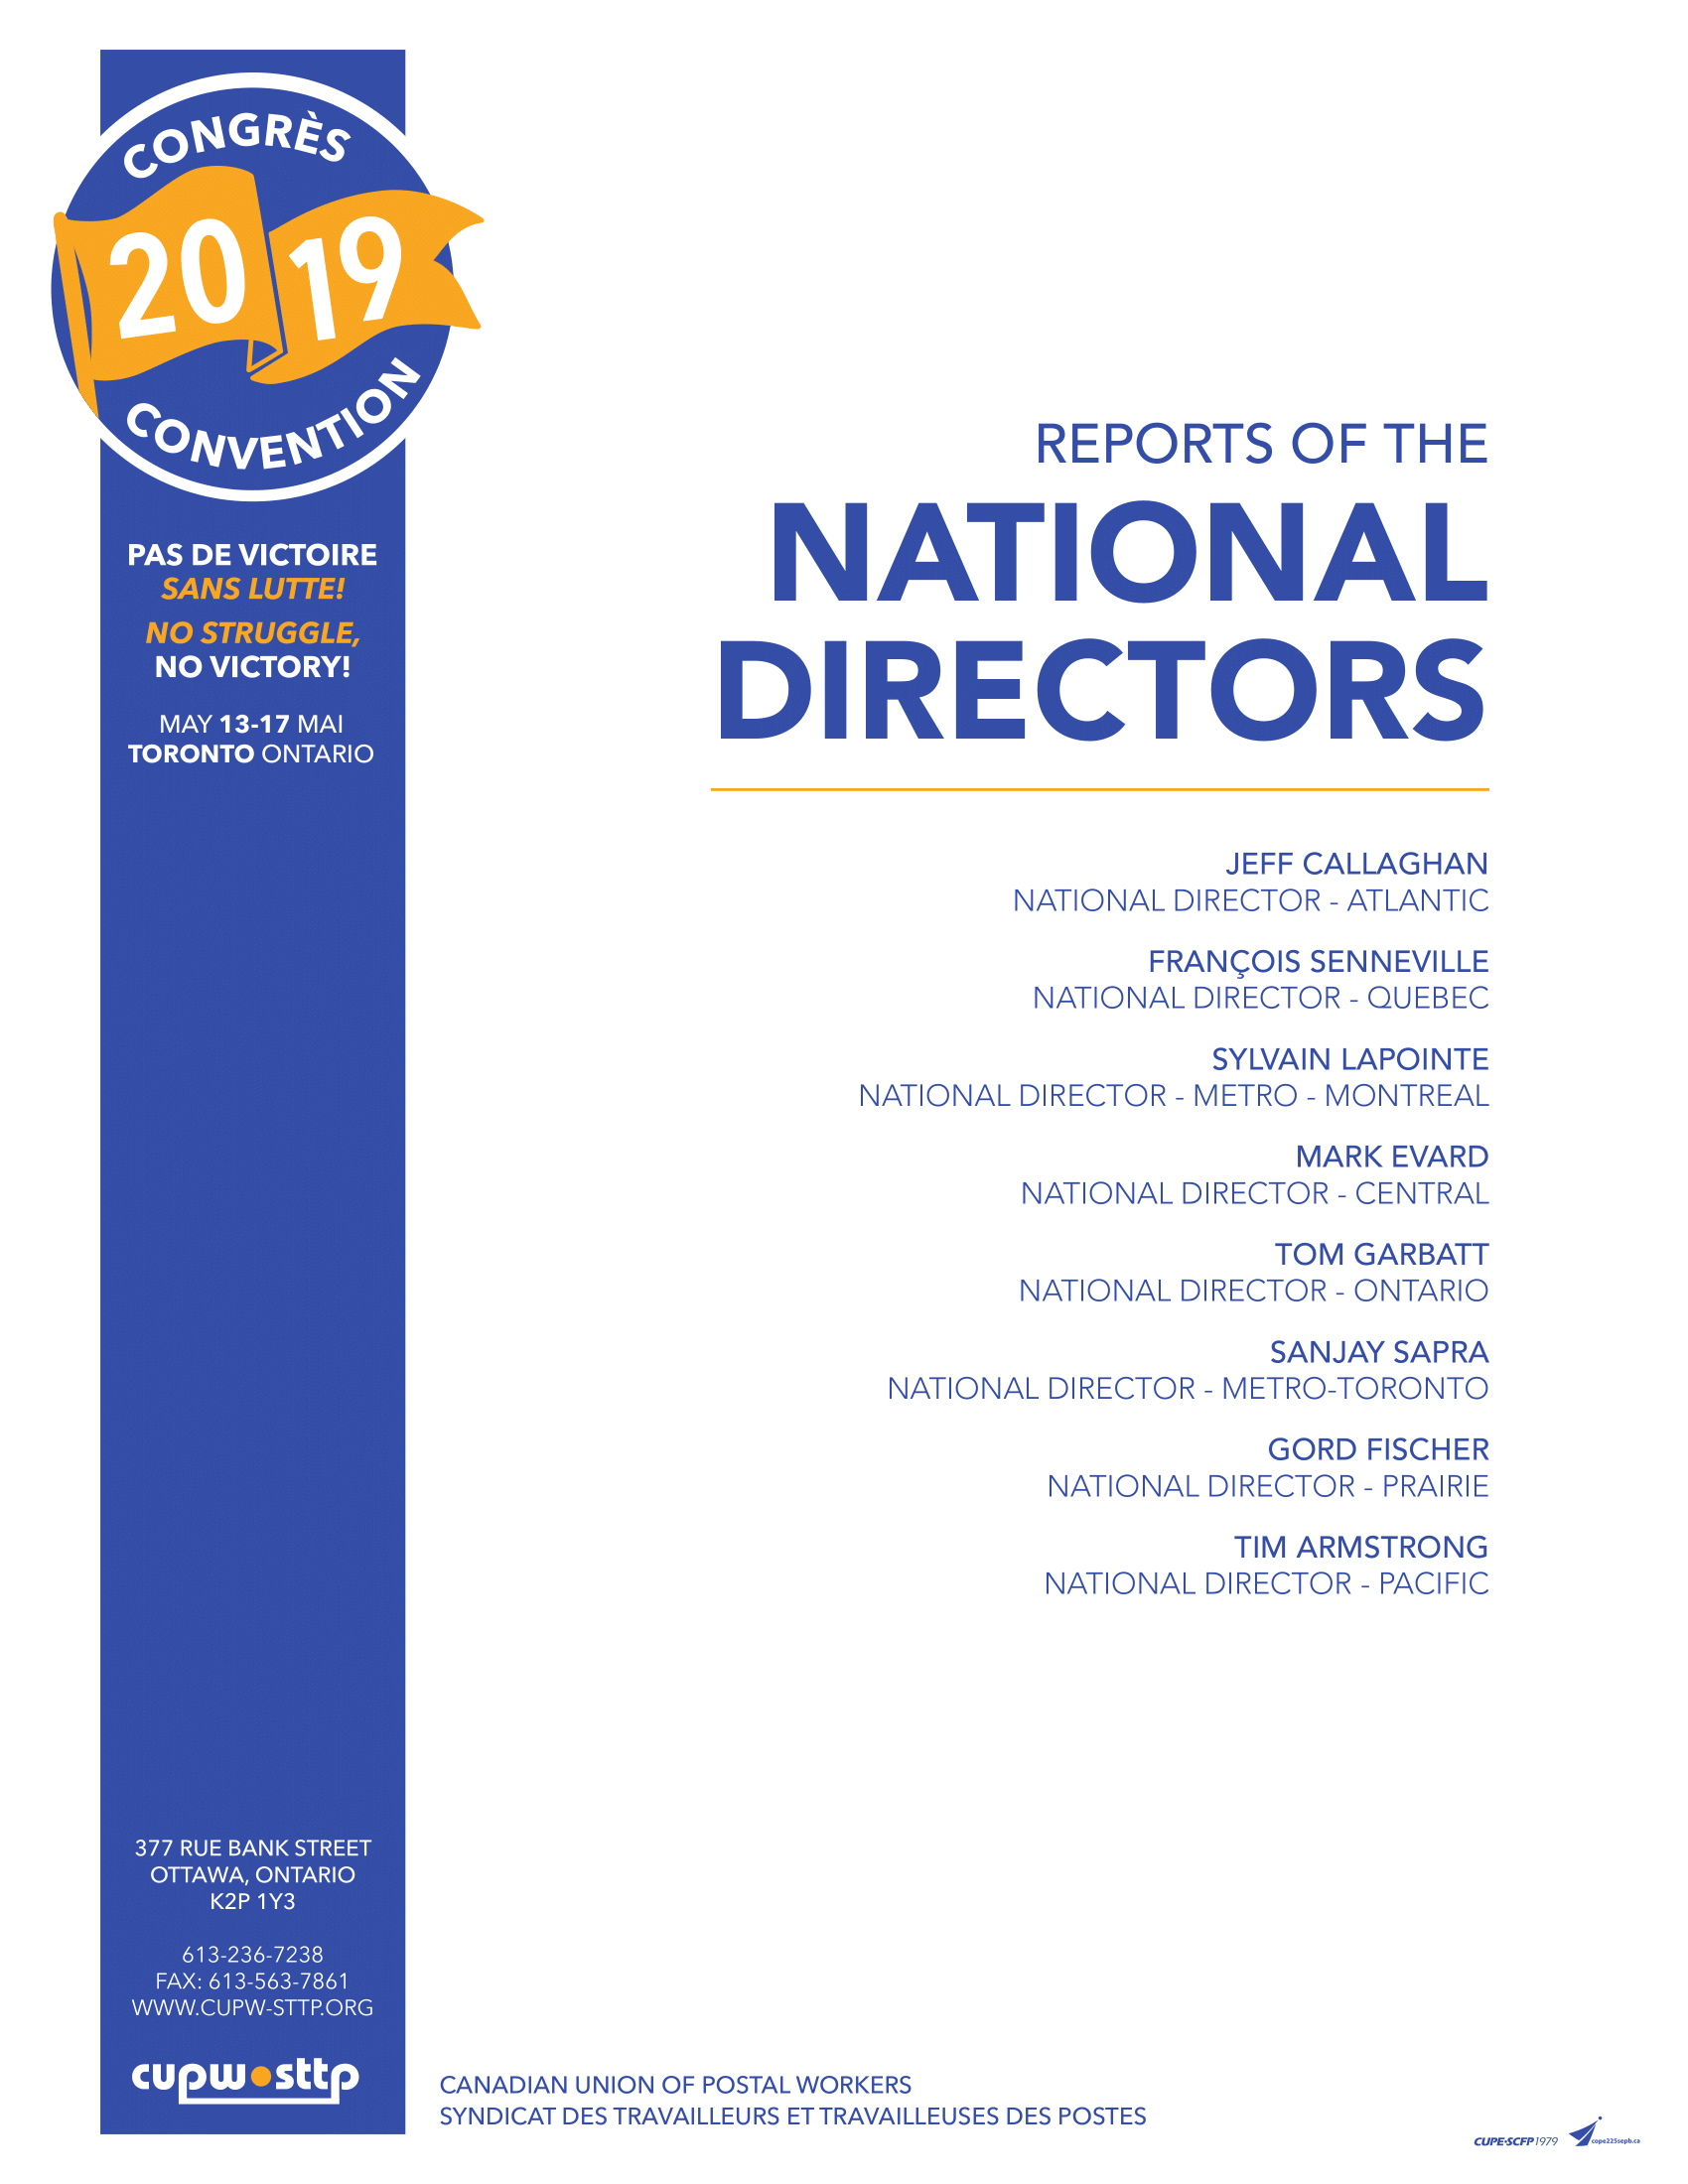 Reports of the National Directors (2019)